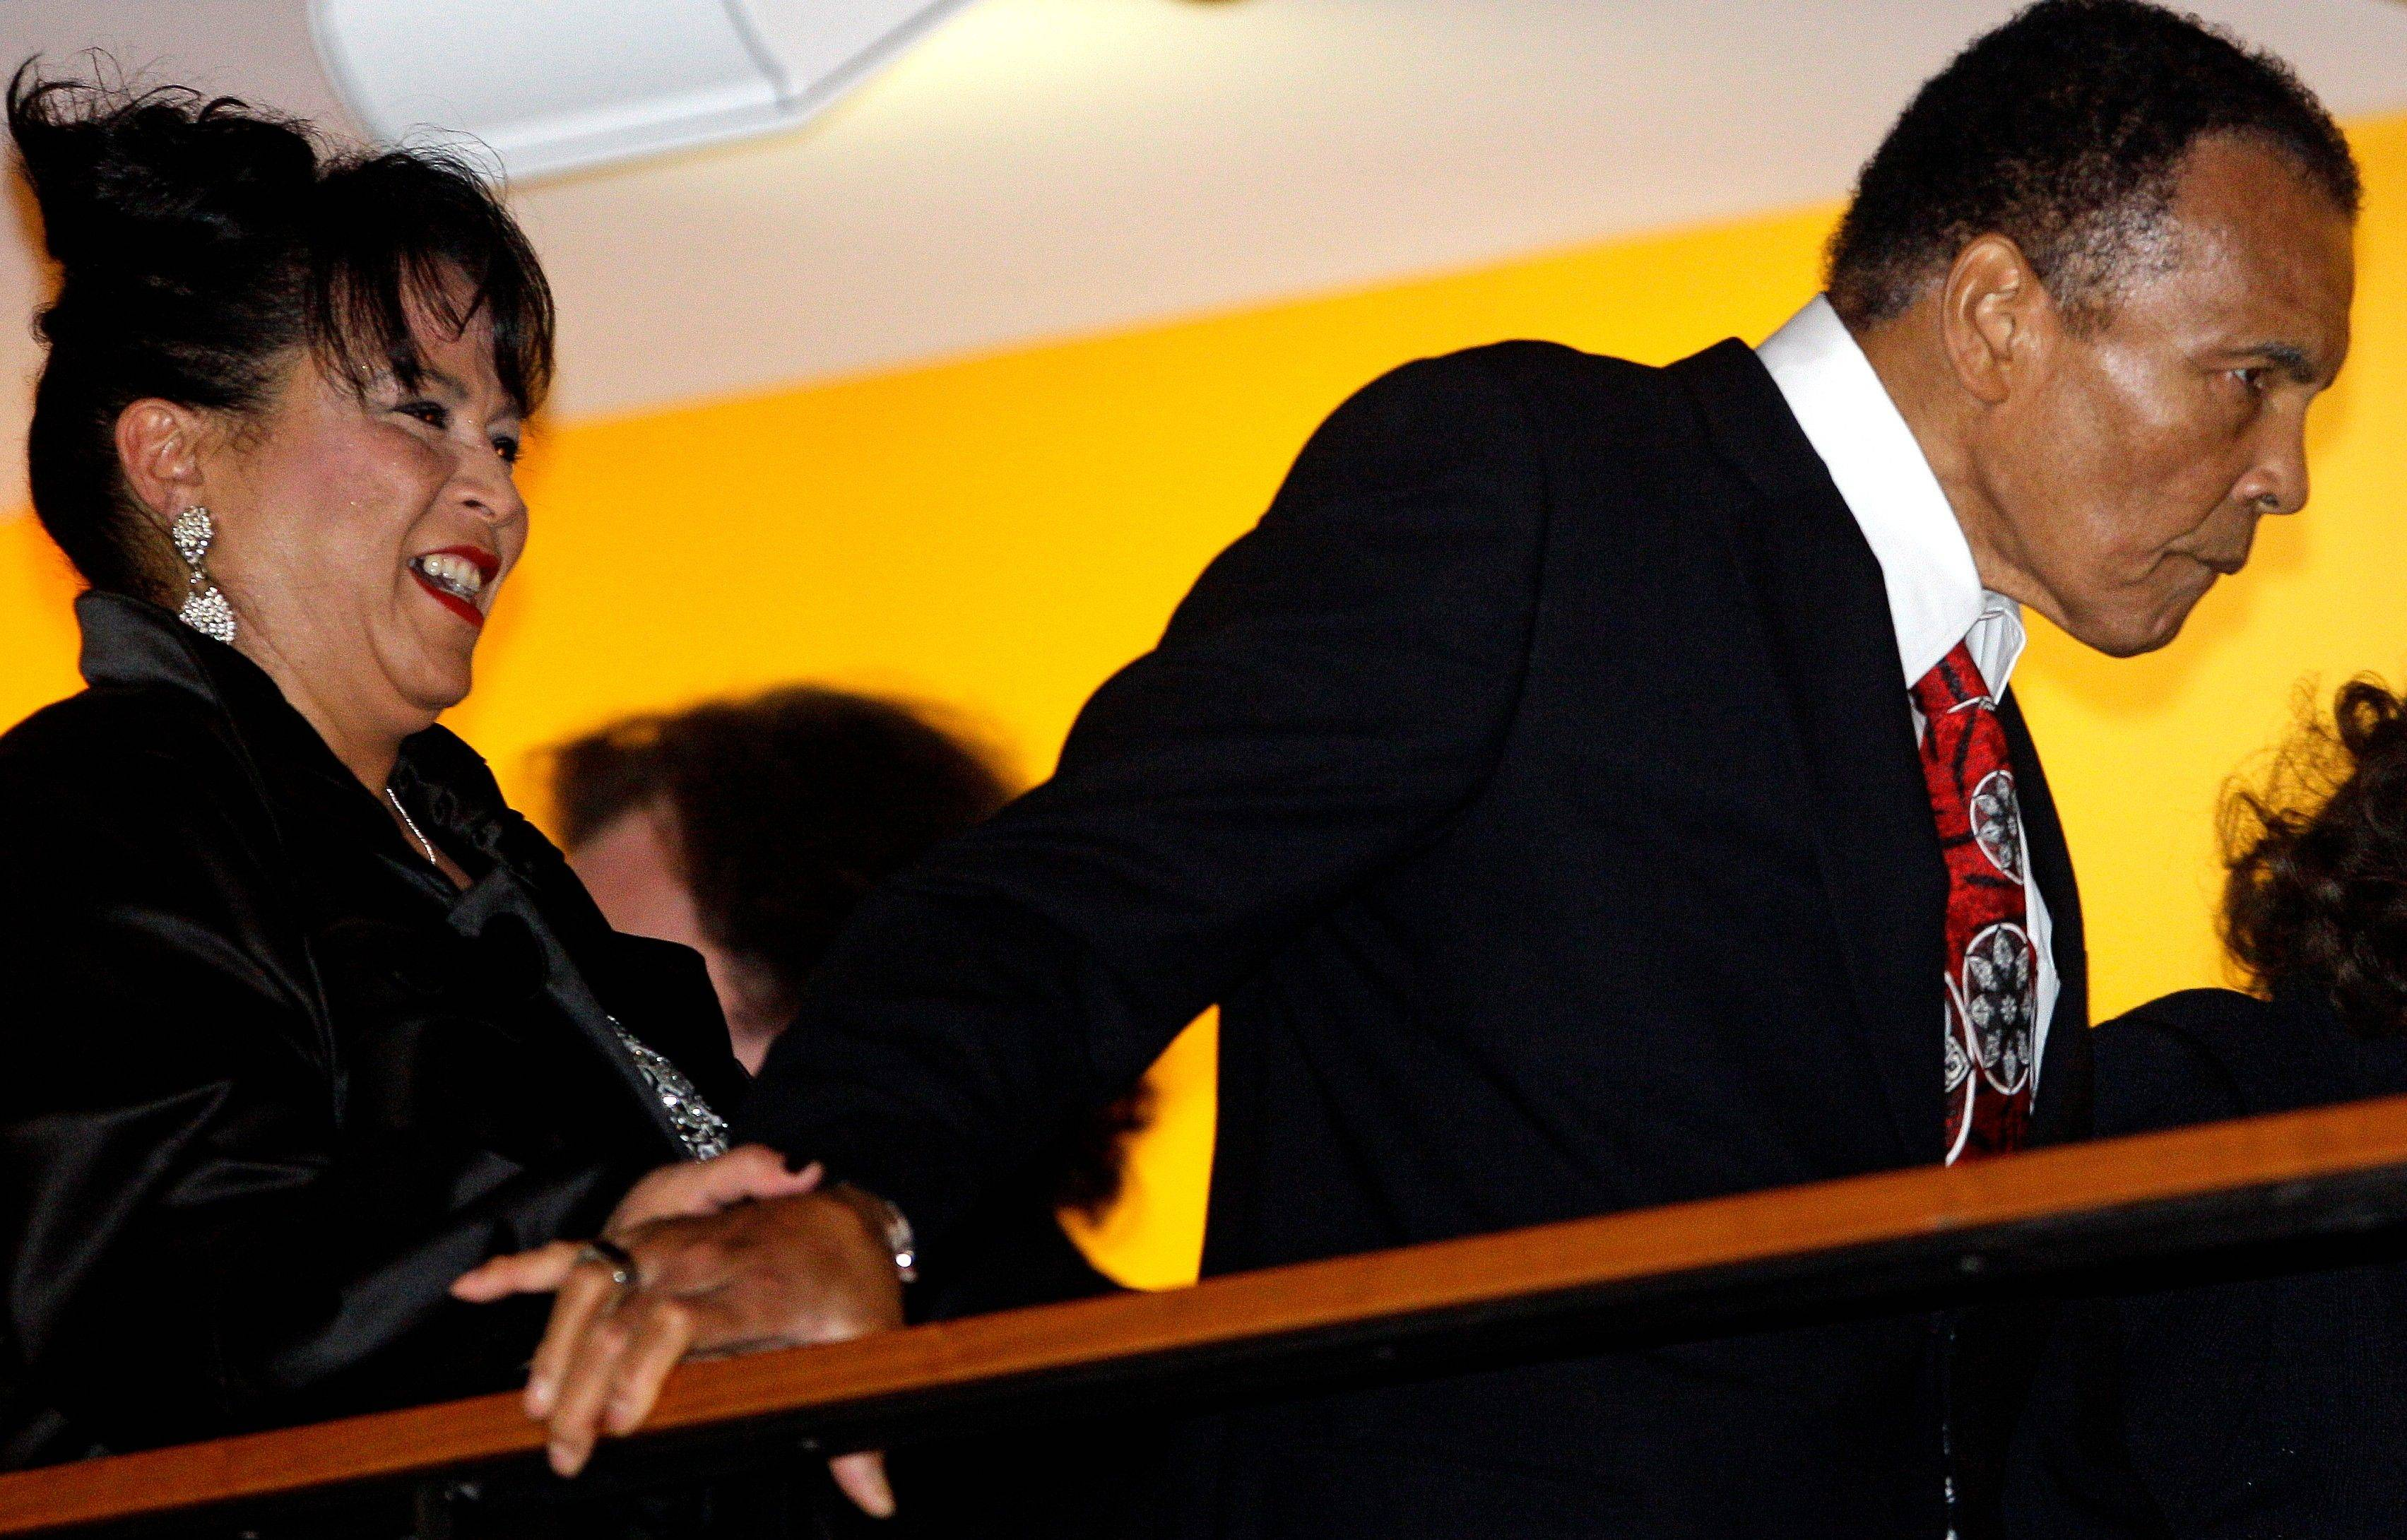 Boxing great Muhammad Ali, with the help of his sister-in-law, Marilyn Williams, makes an appearance Saturday at a balcony before the celebration for his 70th birthday at the Muhammad Ali Center.